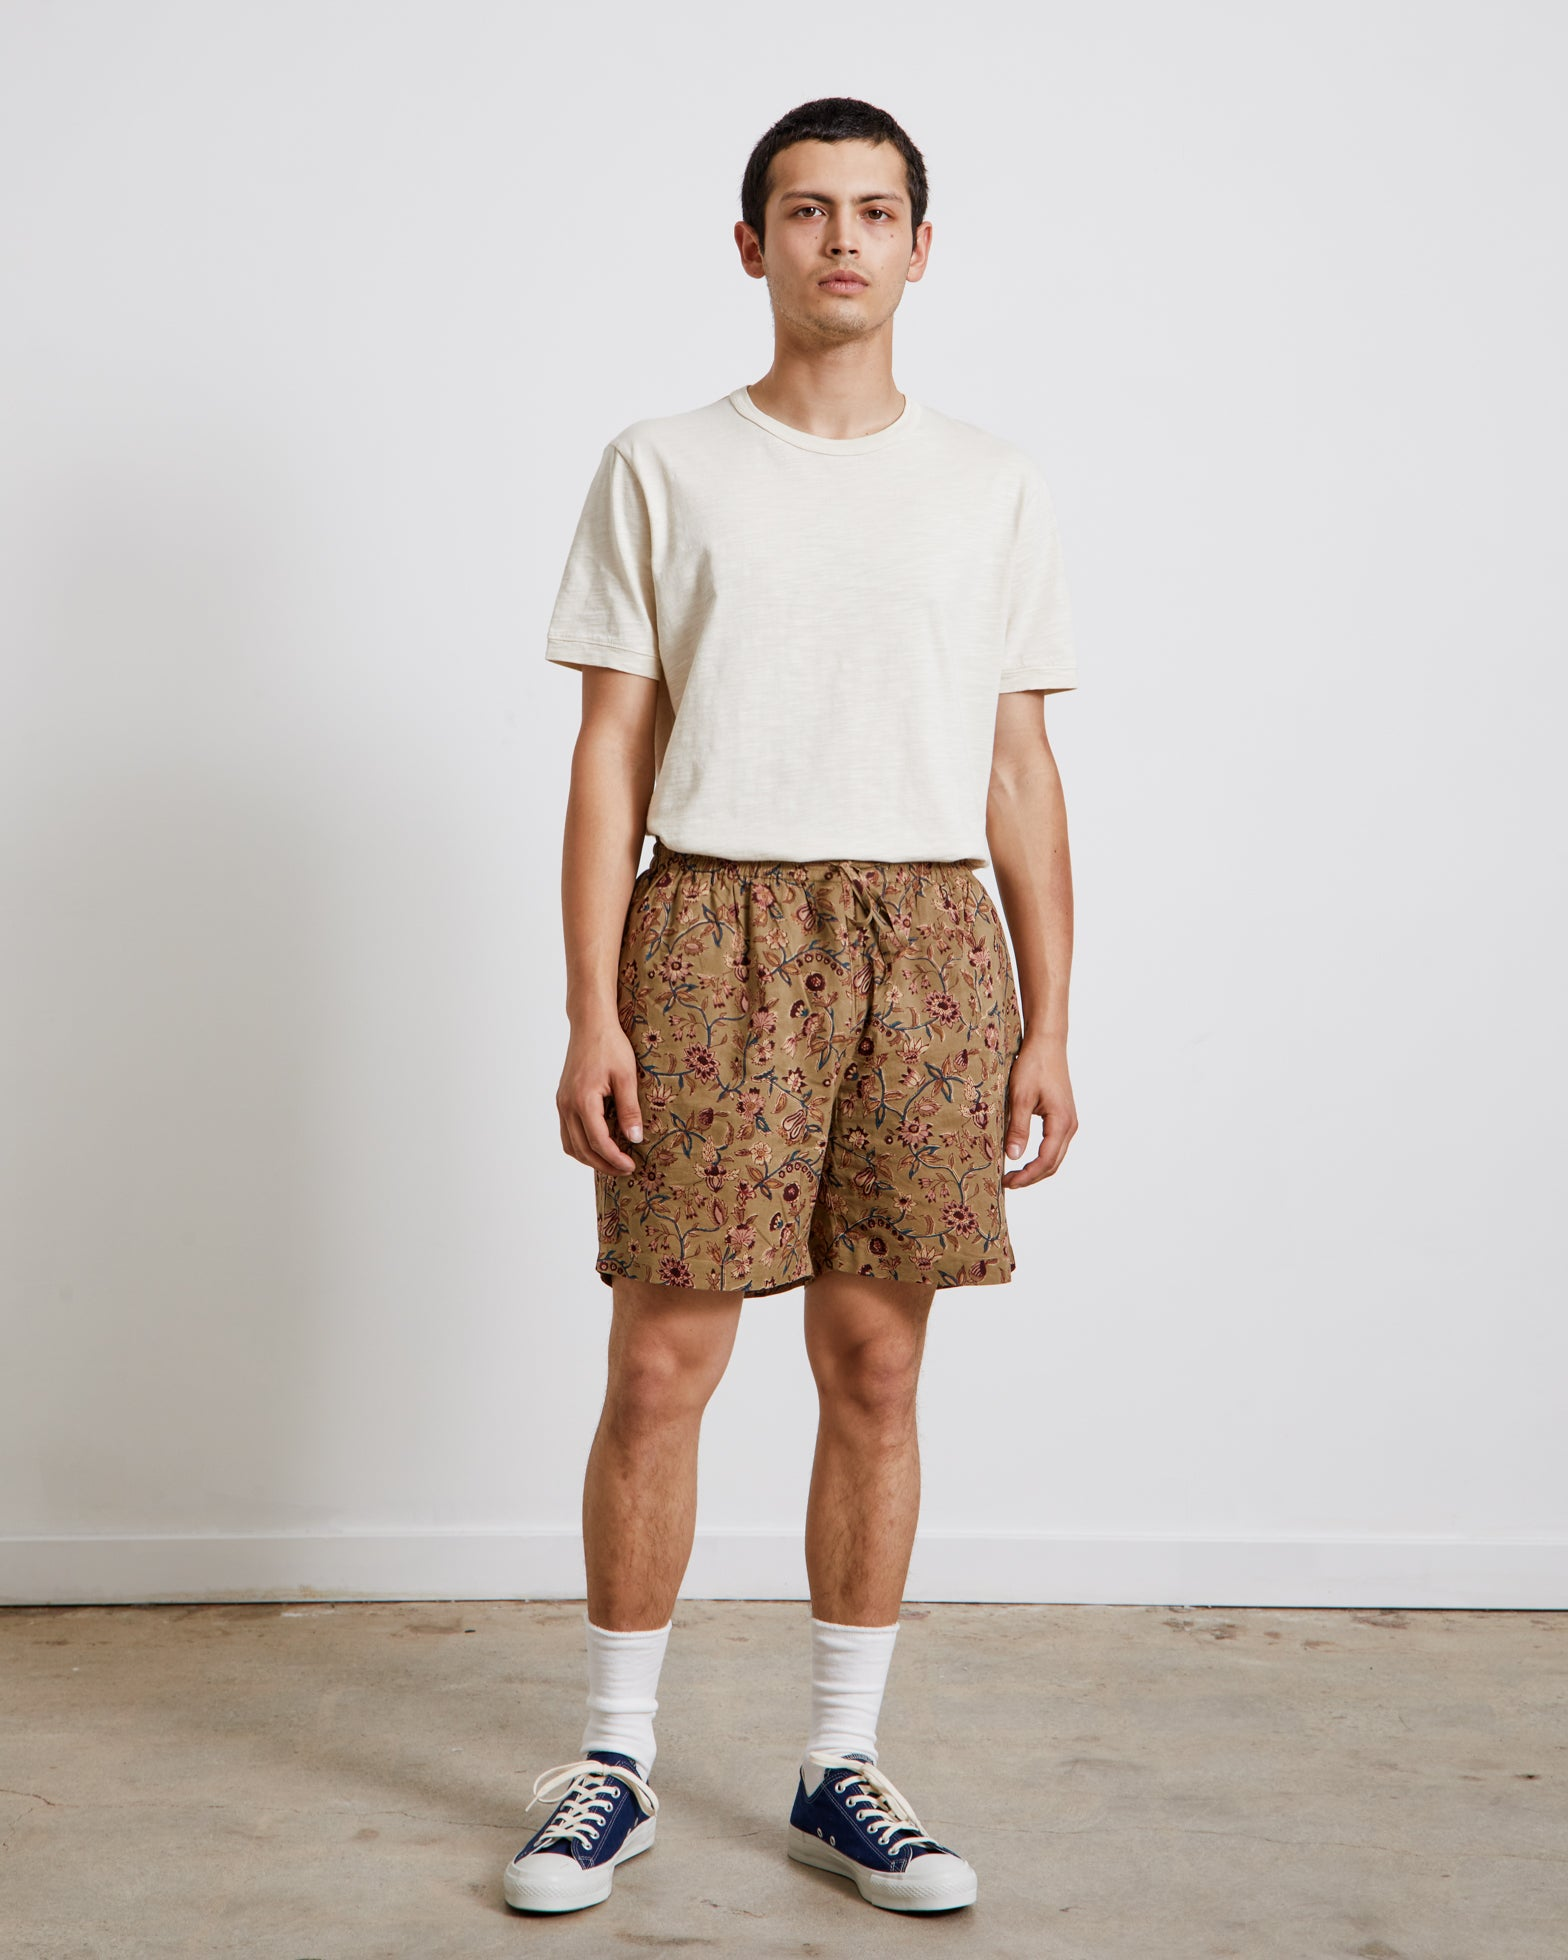 Alghero Beach Shorts in Tan